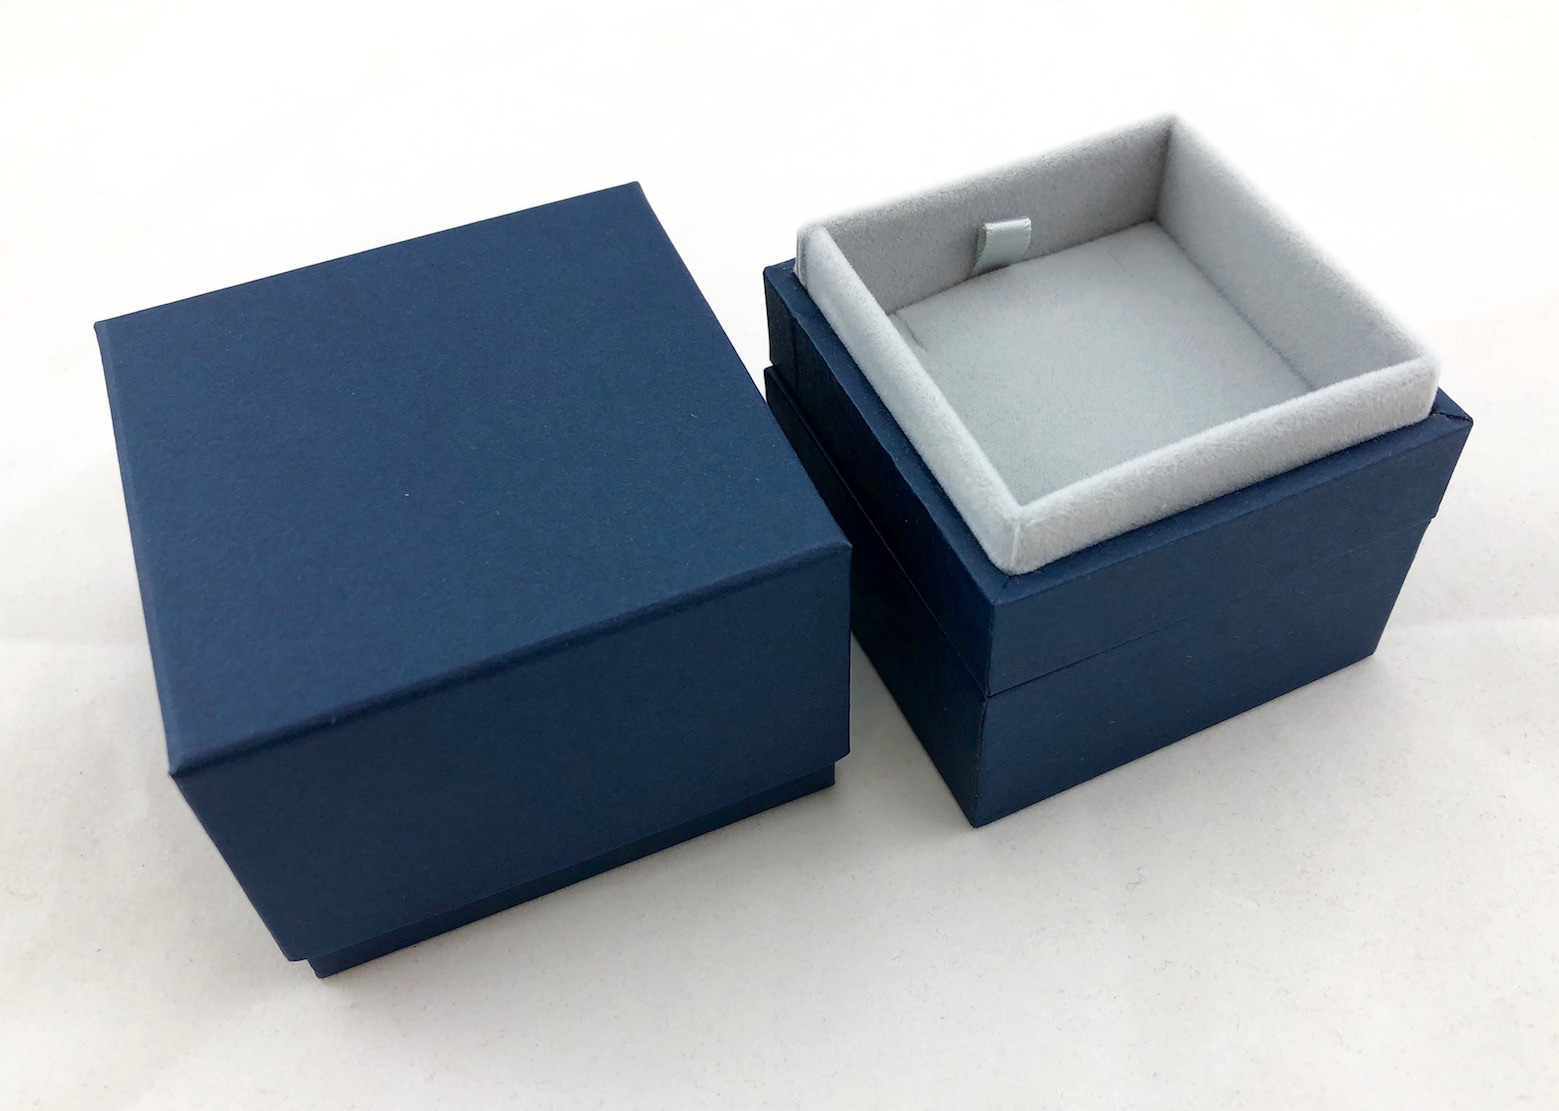 New Blue Envy Pendant Box with light grey suede lining